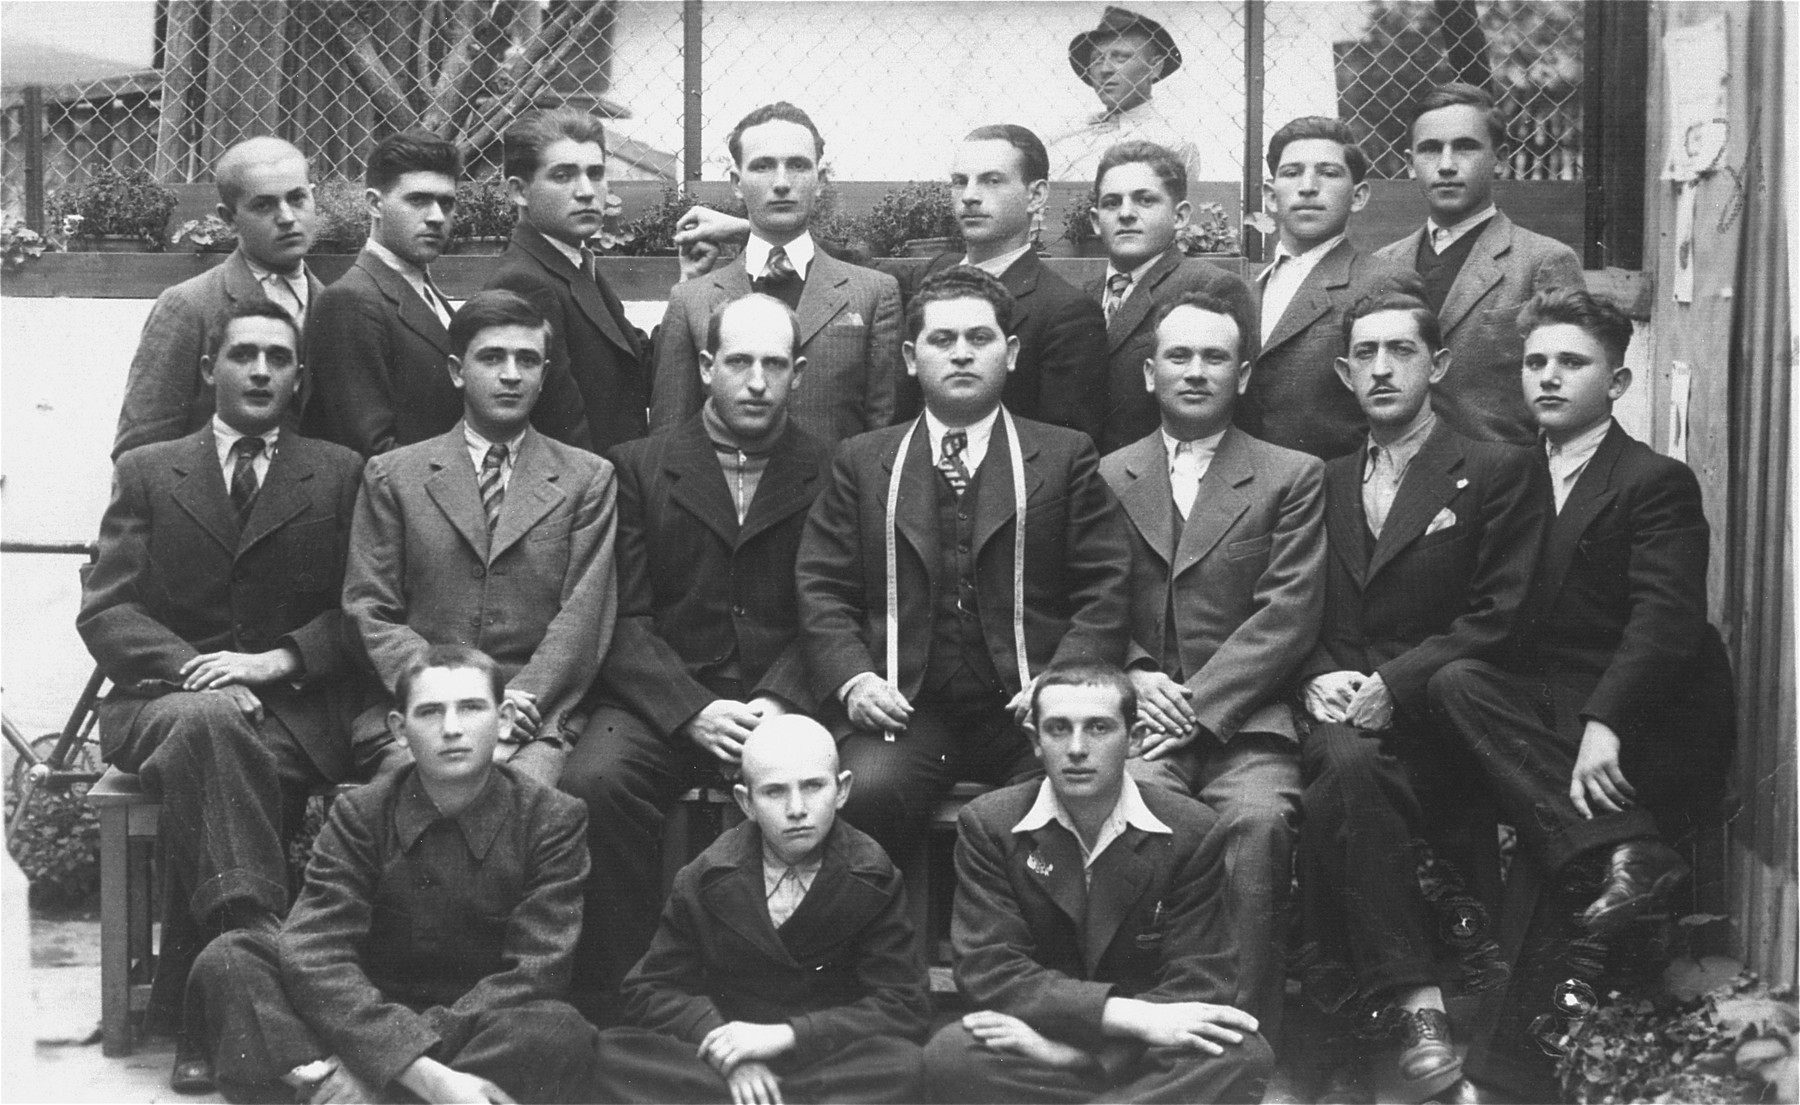 Abraham Ickovic poses with the employees of his garment factory, the Pansky a Damsky Krejci, in Tacovo.   Among those pictured are Abraham Ickovic (second row, fourth from the left) and Ludvic Ickovic (second row, first on the right). Of these eighteen men only nine survived the war.